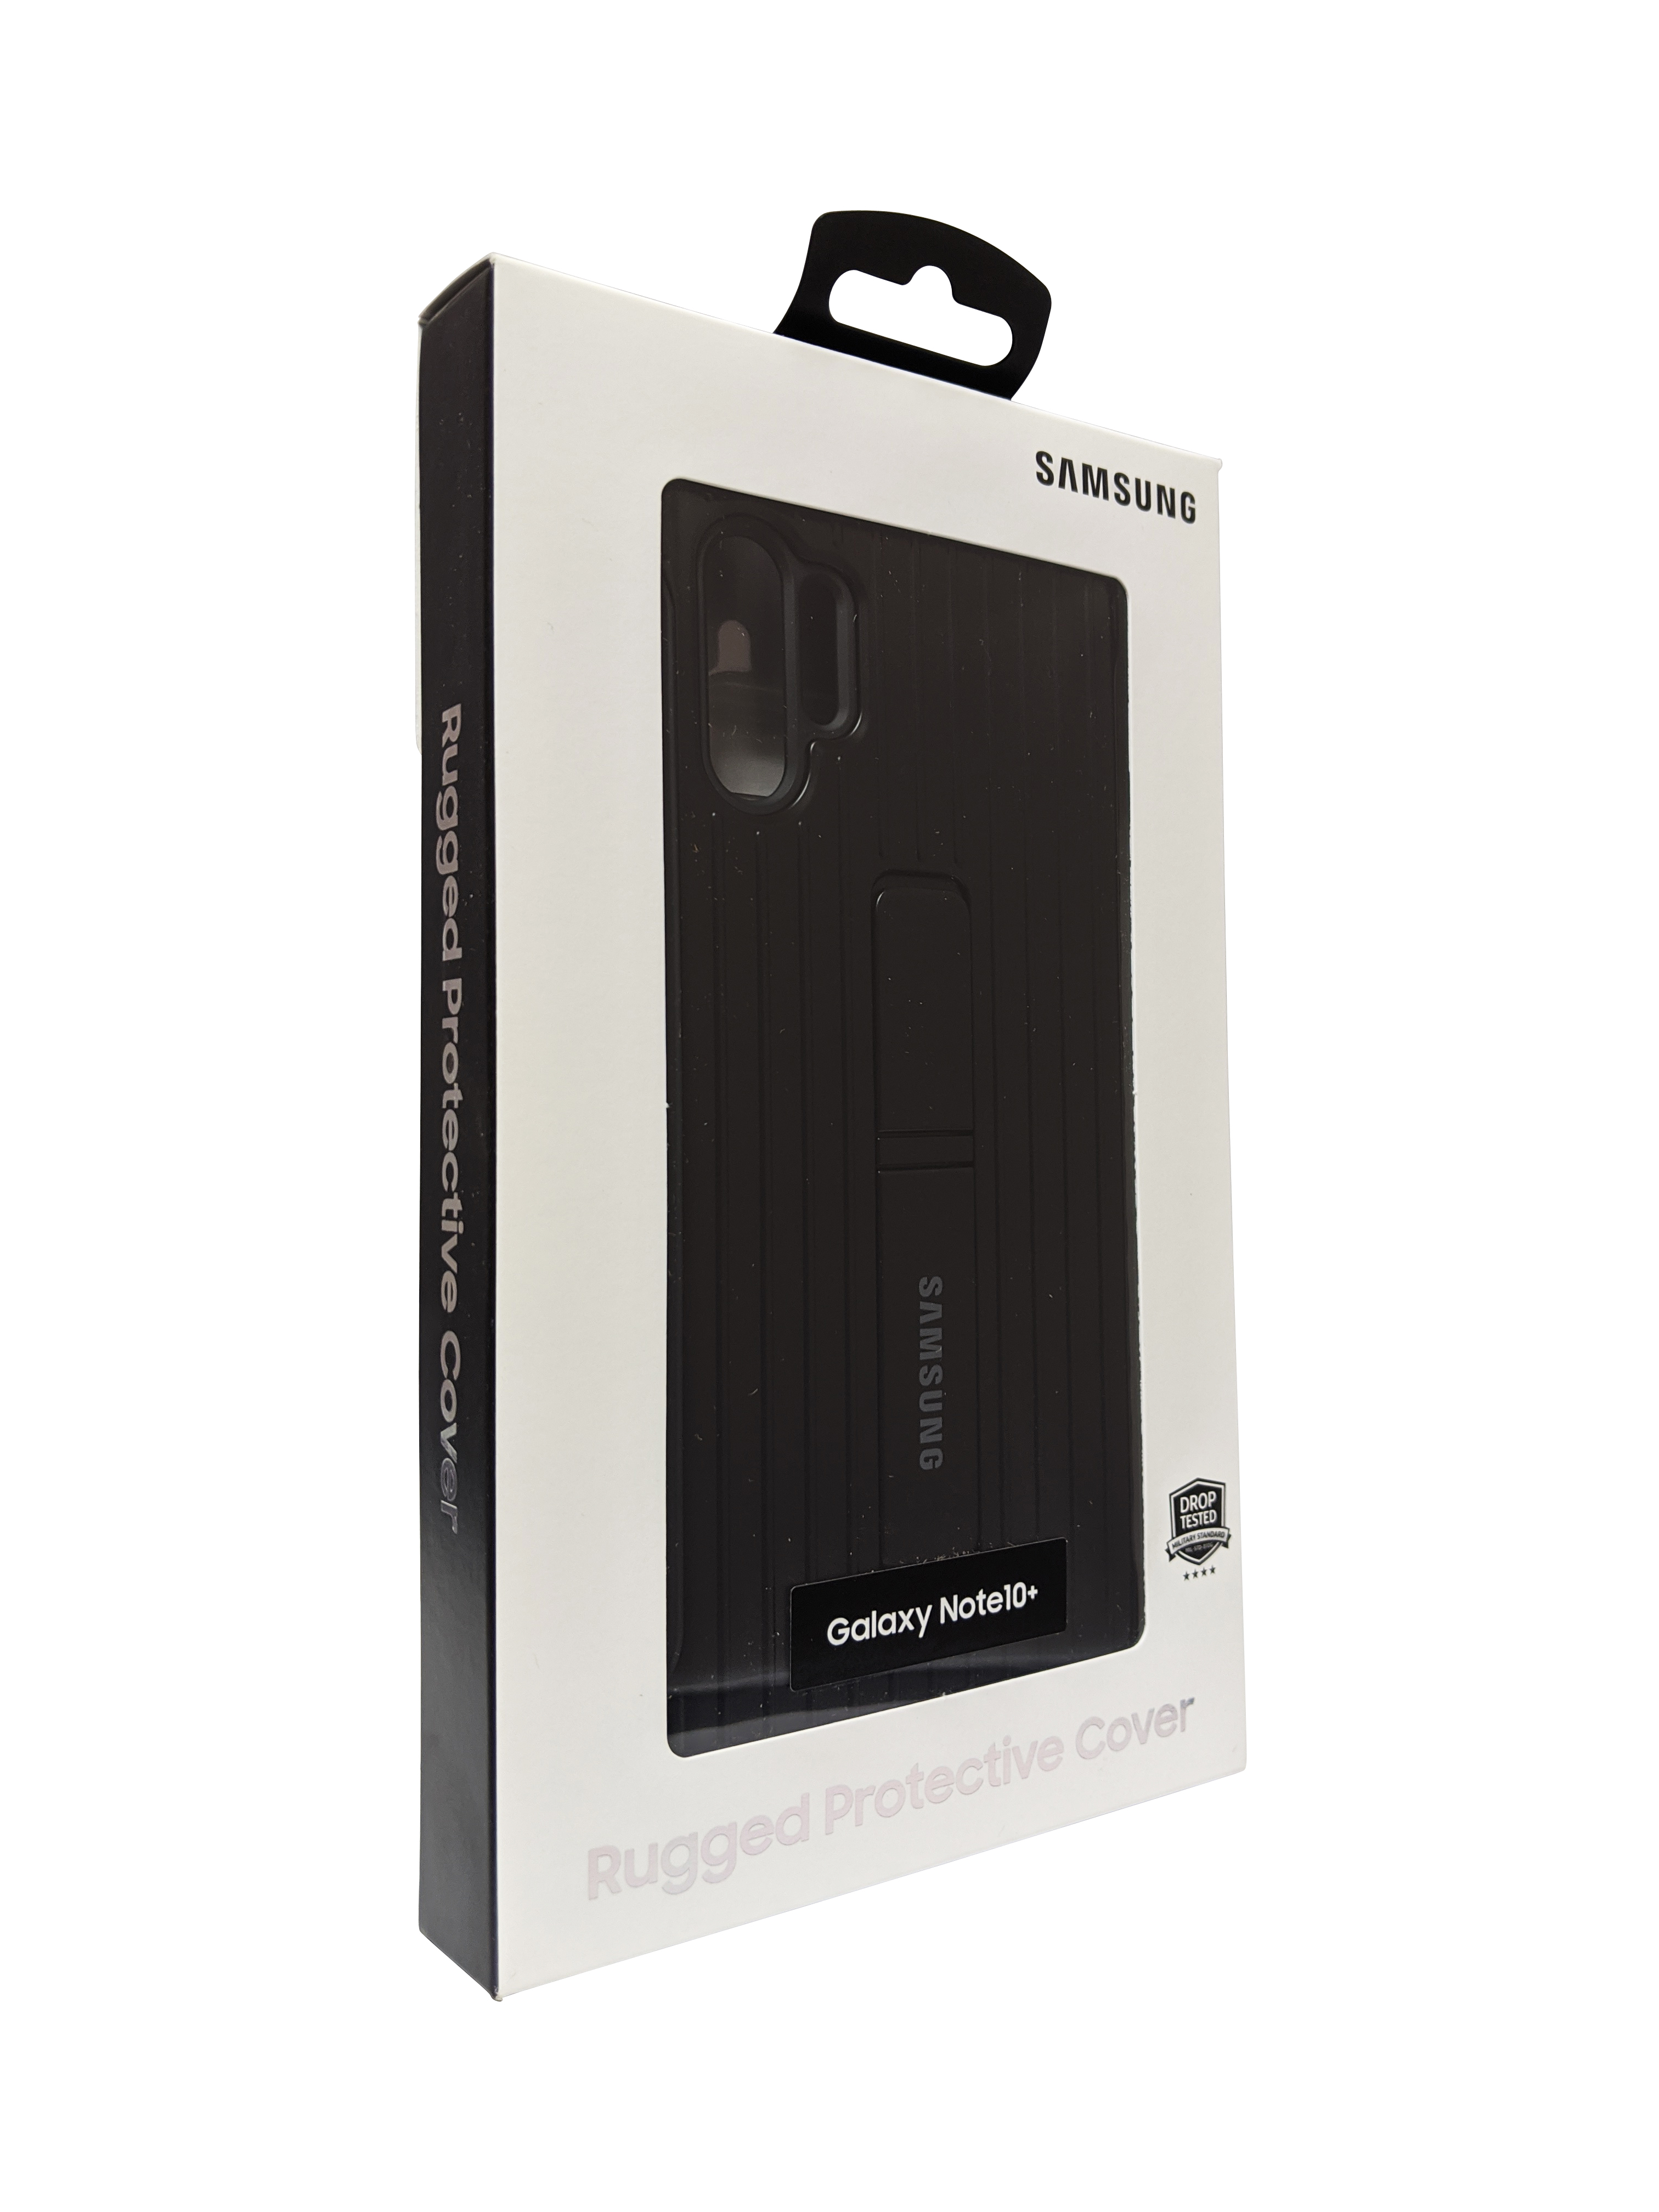 OEM Samsung Galaxy Note 10 Plus Rugged Protective Case - Black